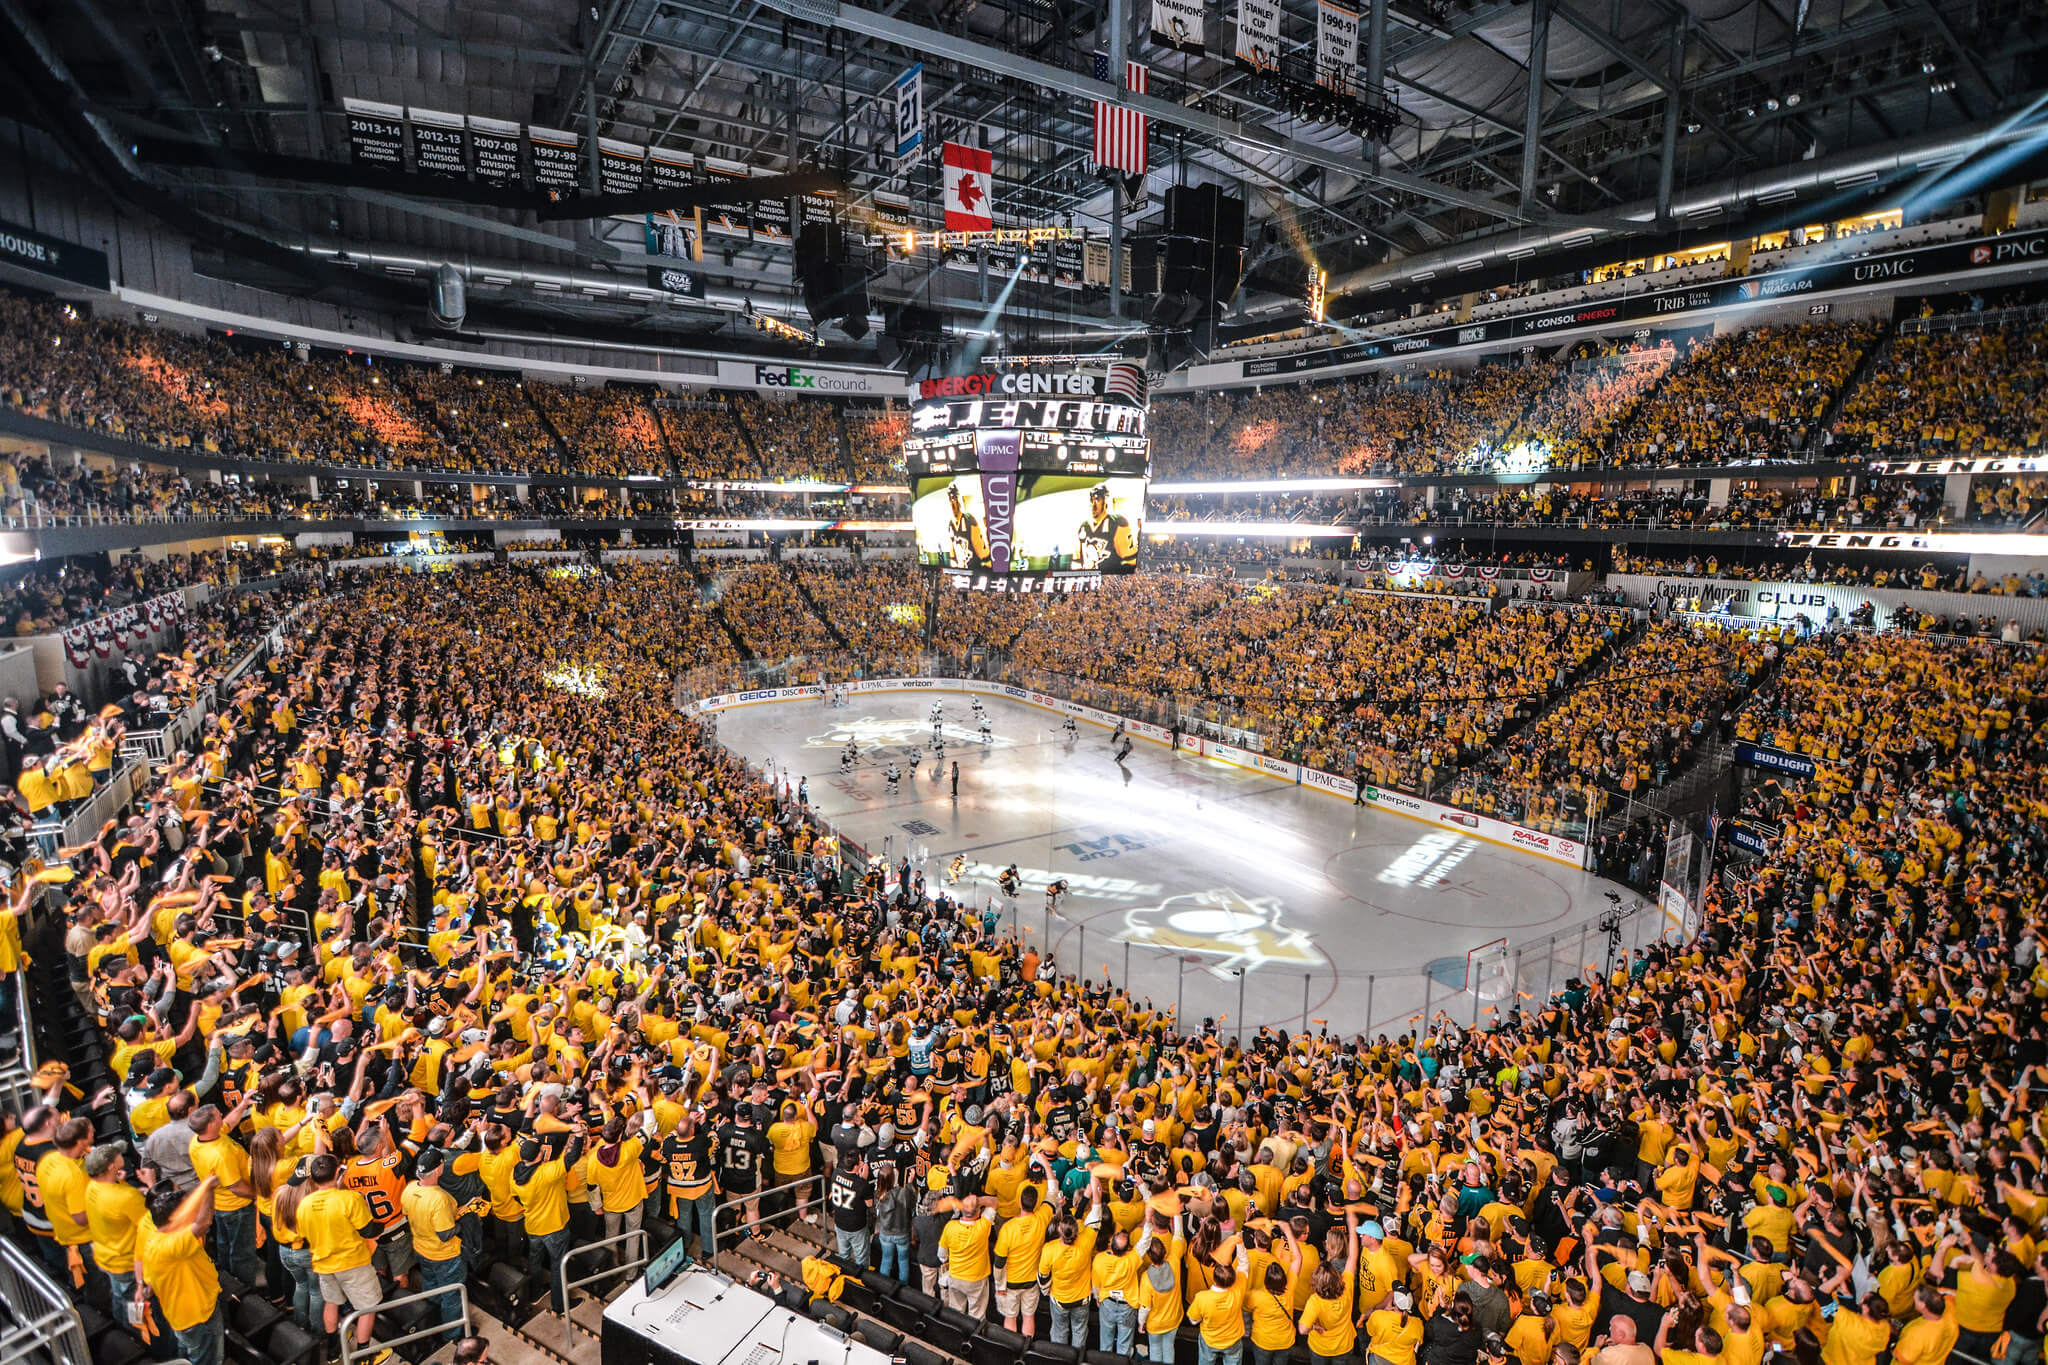 Pittsburgh Penguins fans at the game